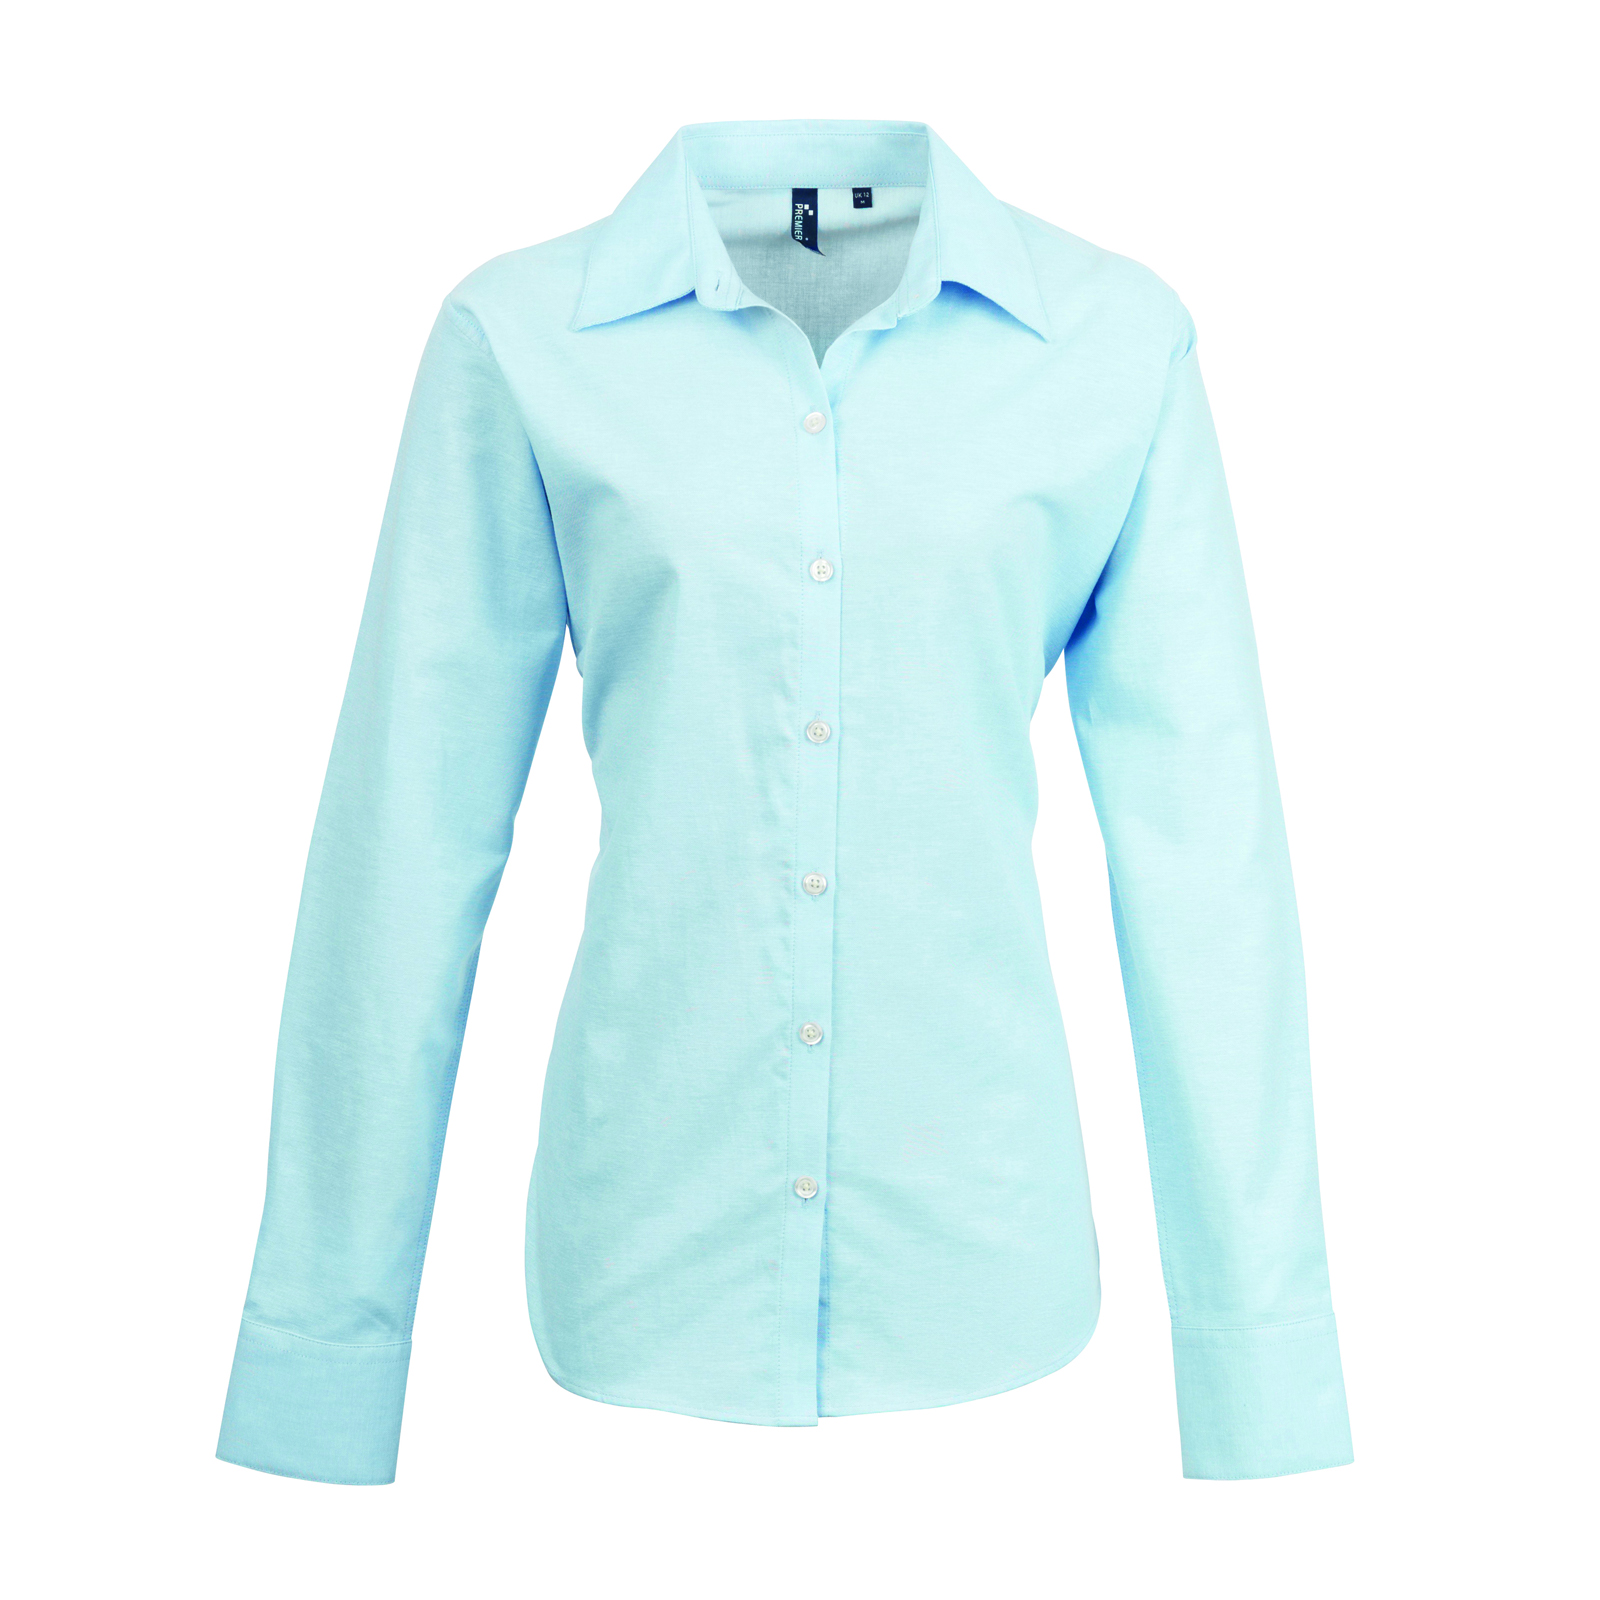 Light Blue Button Up Shirt Womens